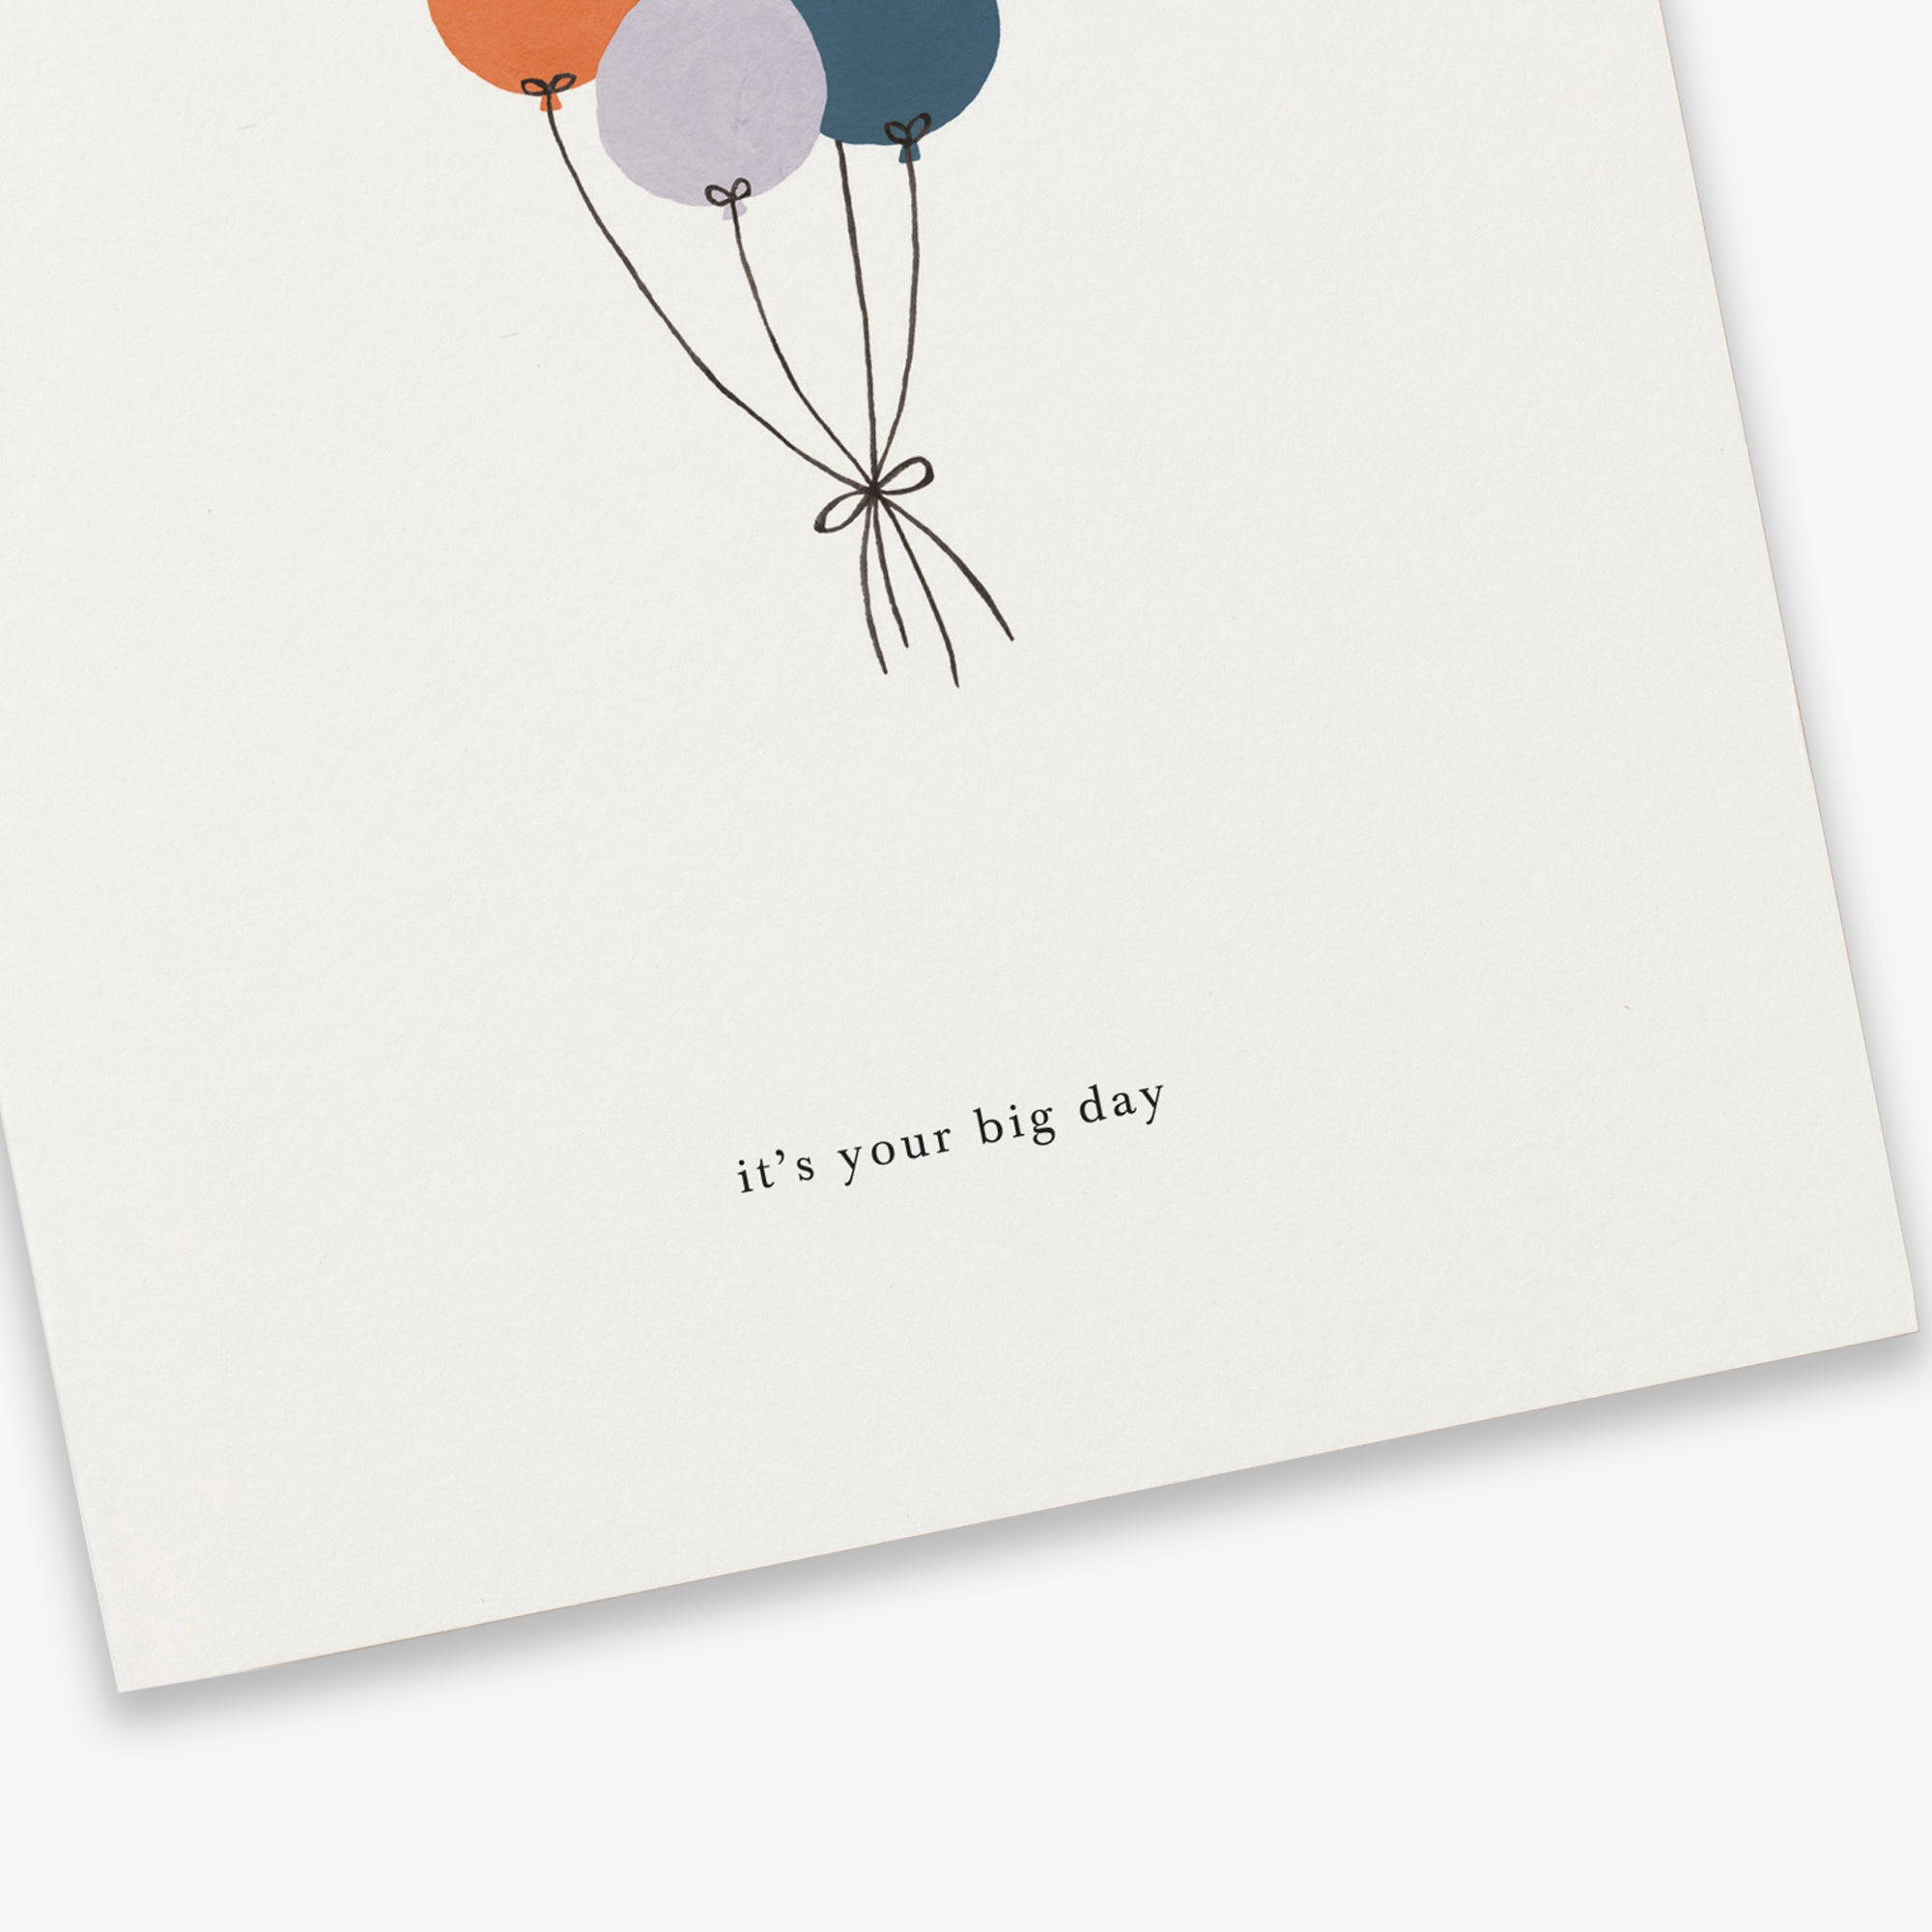 GREETING CARD / BALLOONS